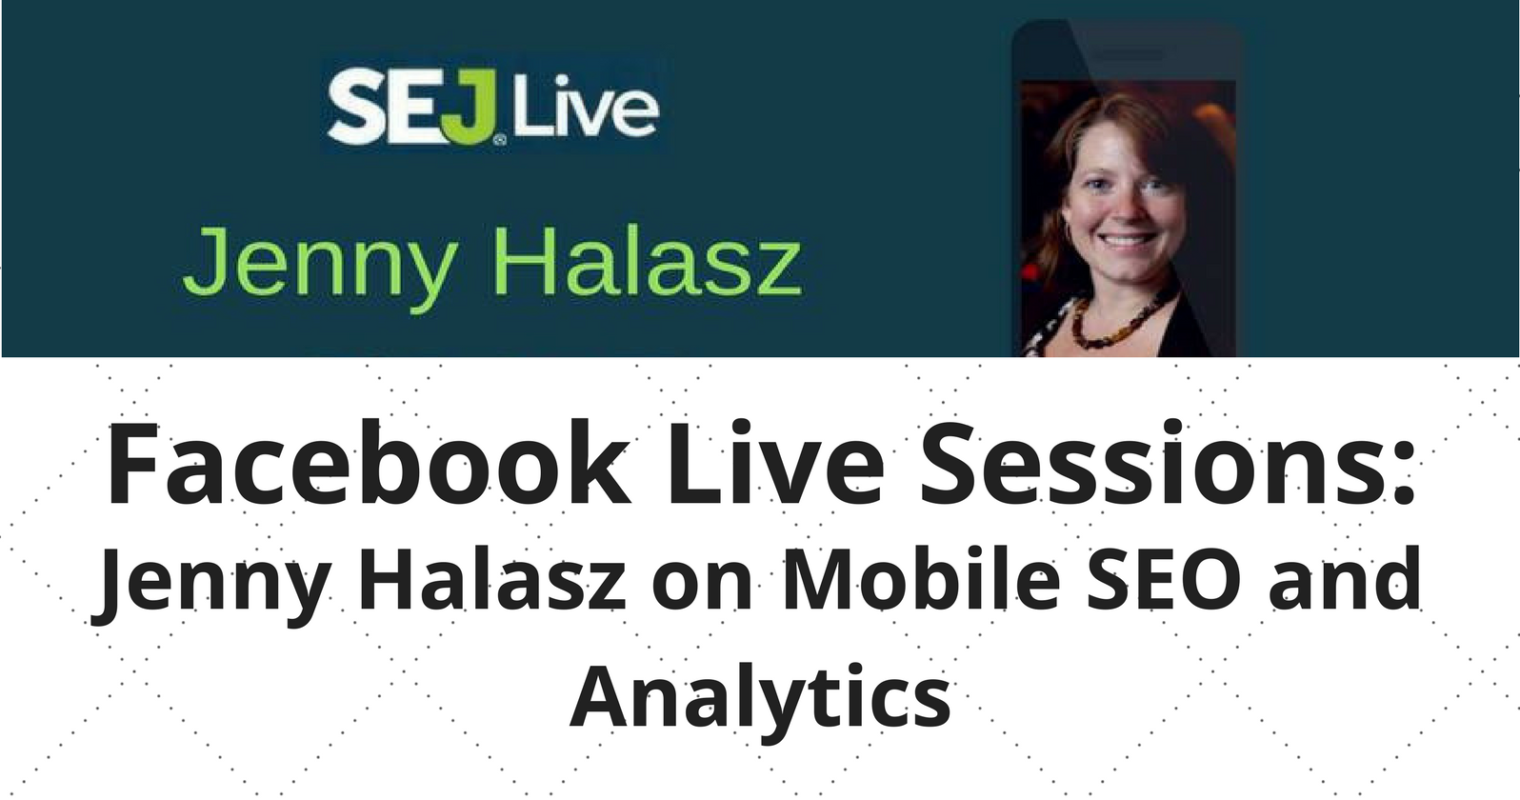 SEJ Live: Jenny Halasz on Mobile SEO and Analytics